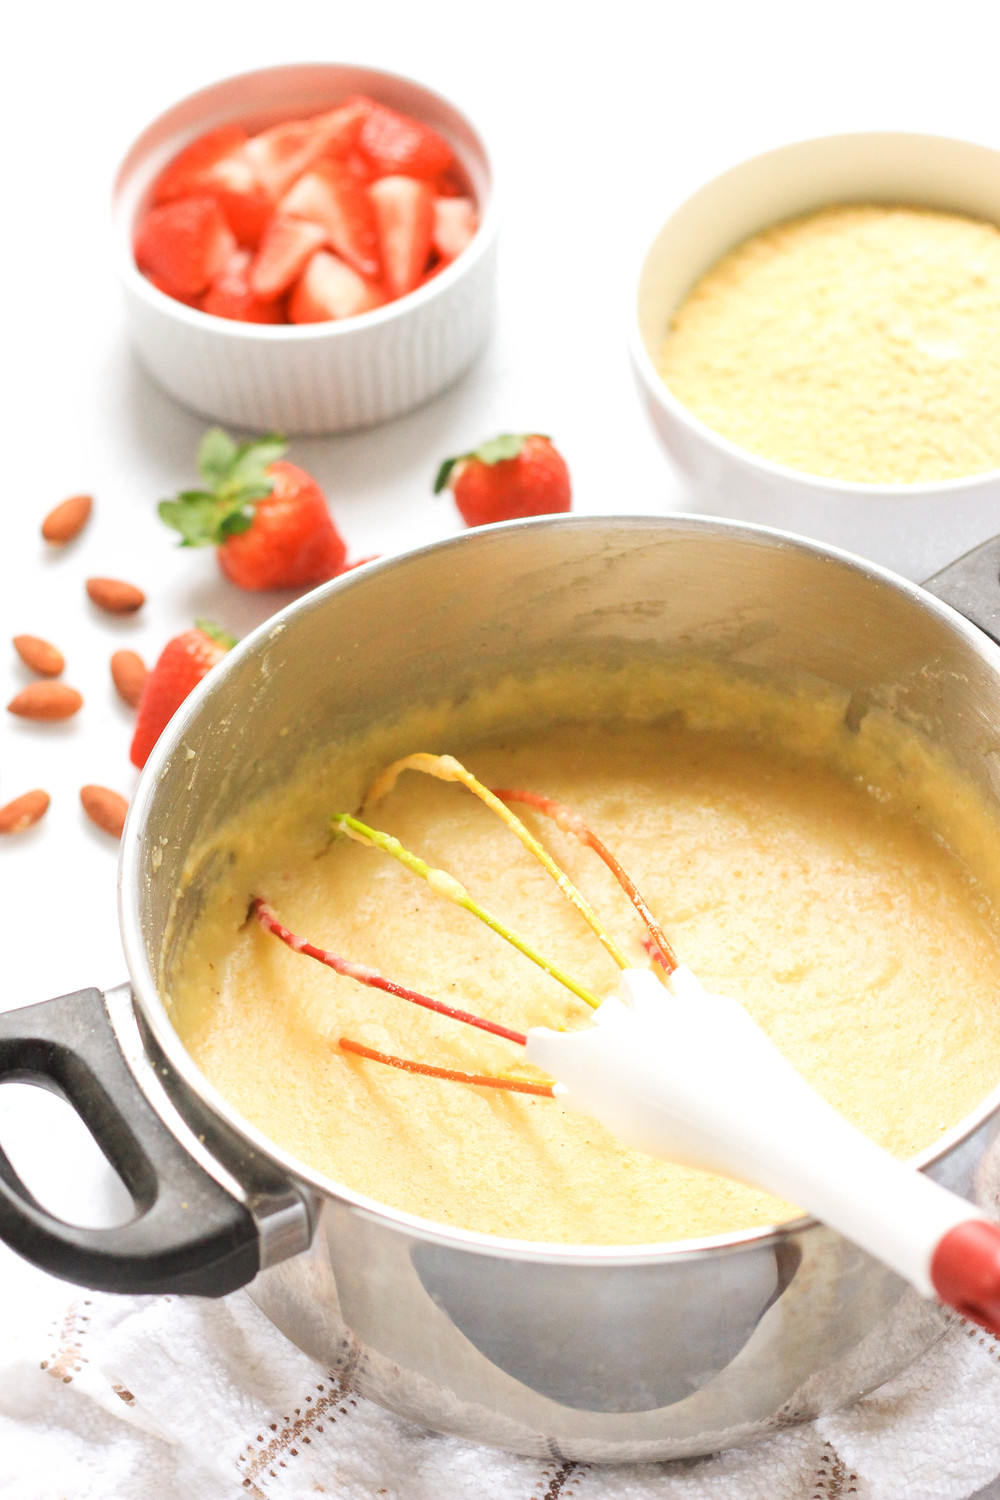 Creamy Breakfast Polenta with Strawberries & Almonds2.jpg